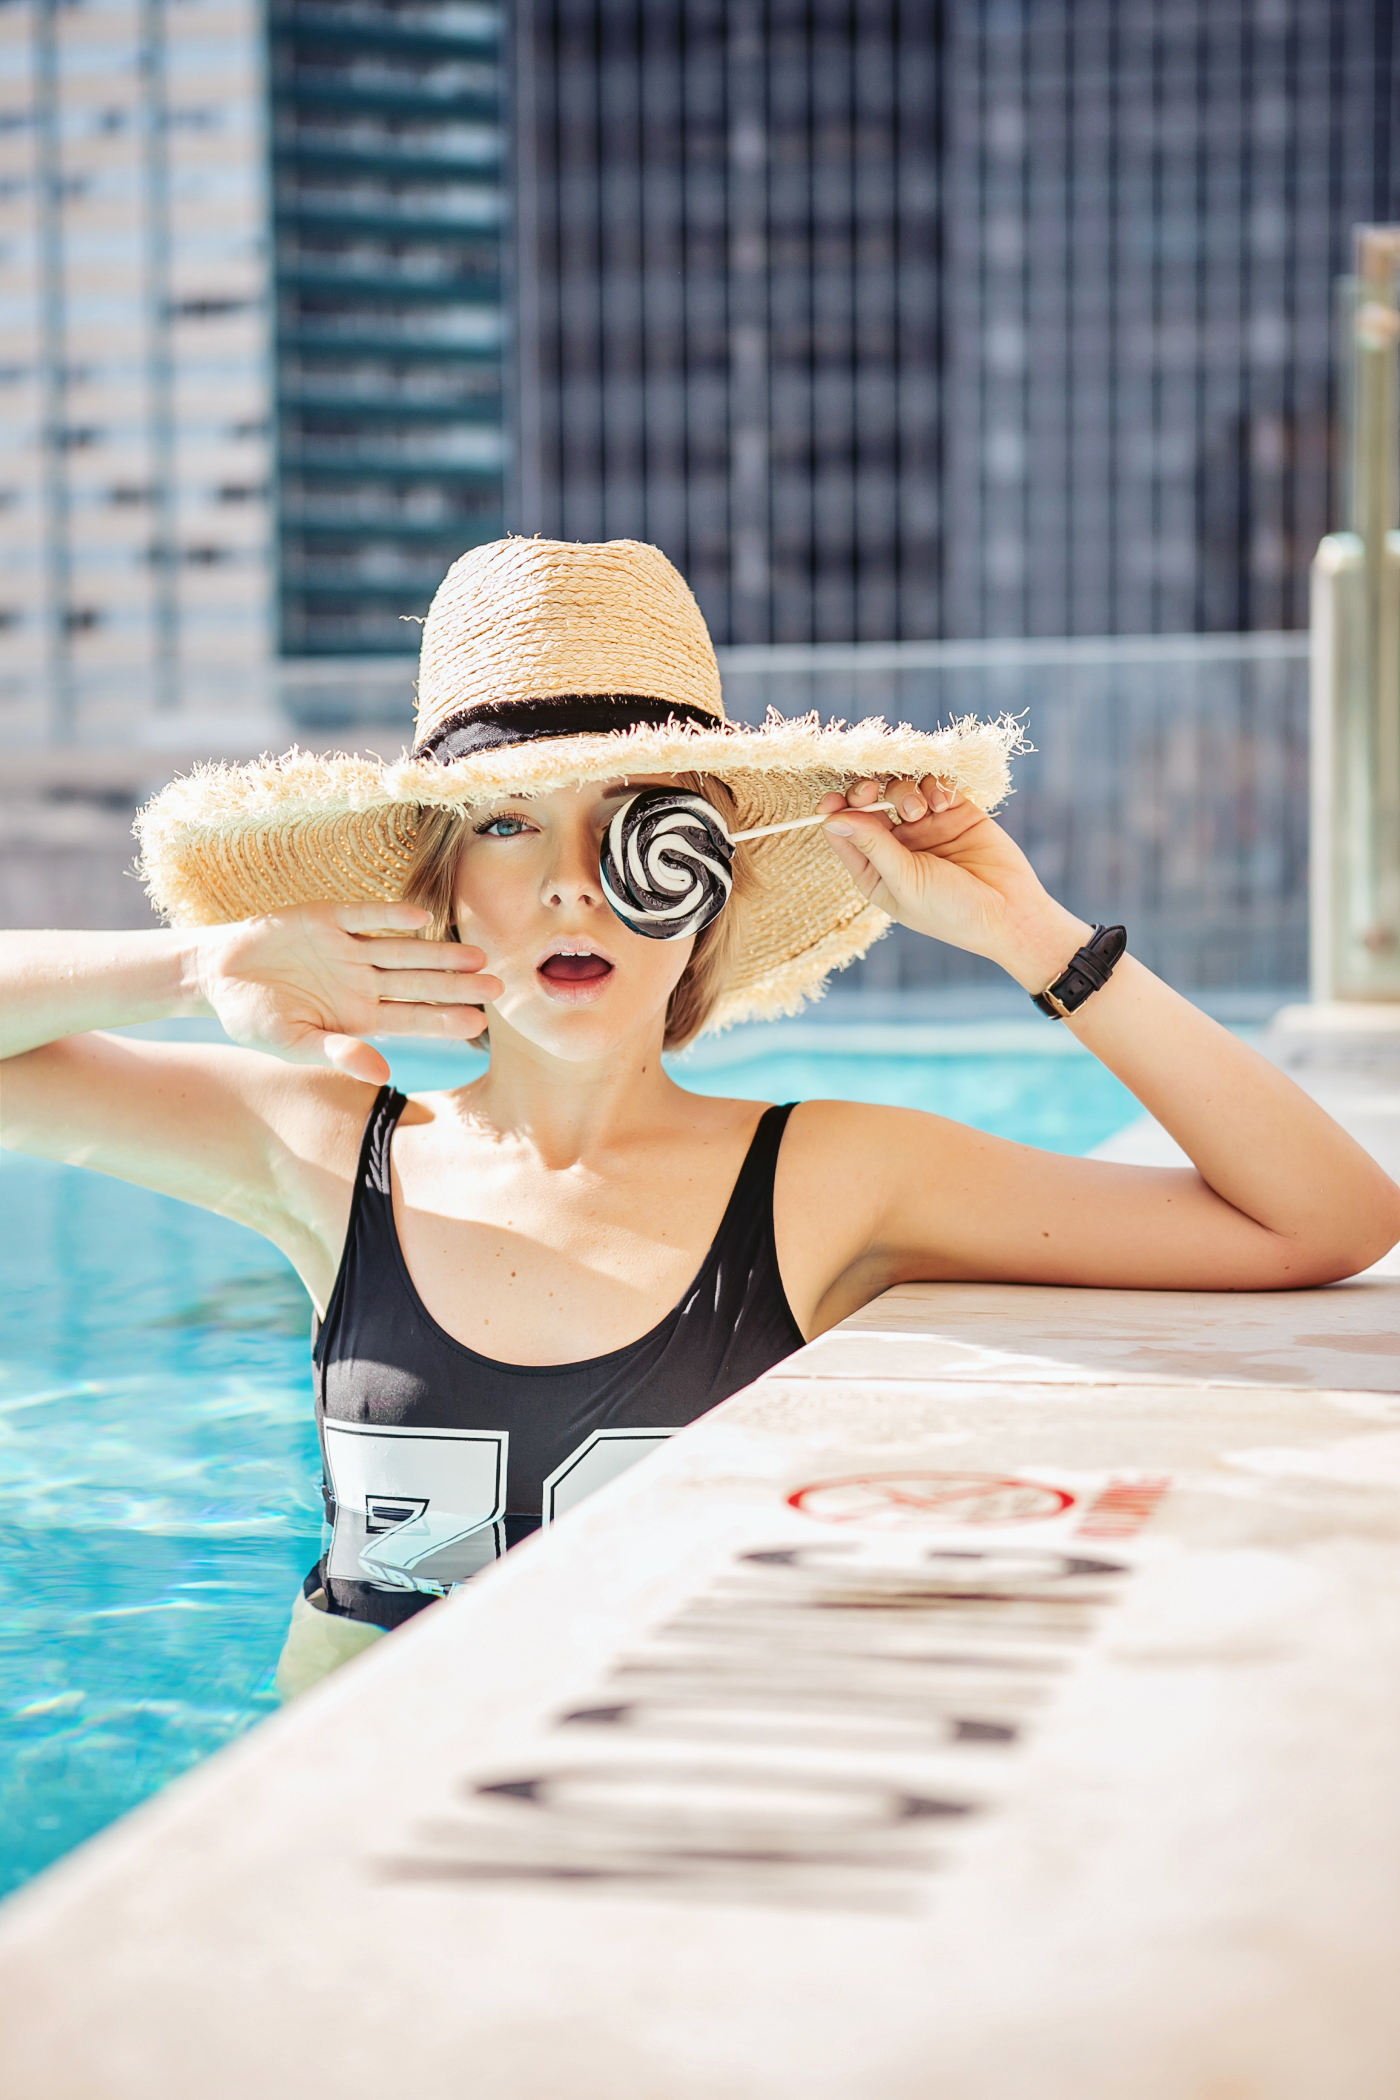 darya kamalova a fashion blogger from thecablook in dallas texas in jolie hotel in the roof swimming pool in zara one piece swimming suit and straw large hat for rewardstyle rsthecon-57